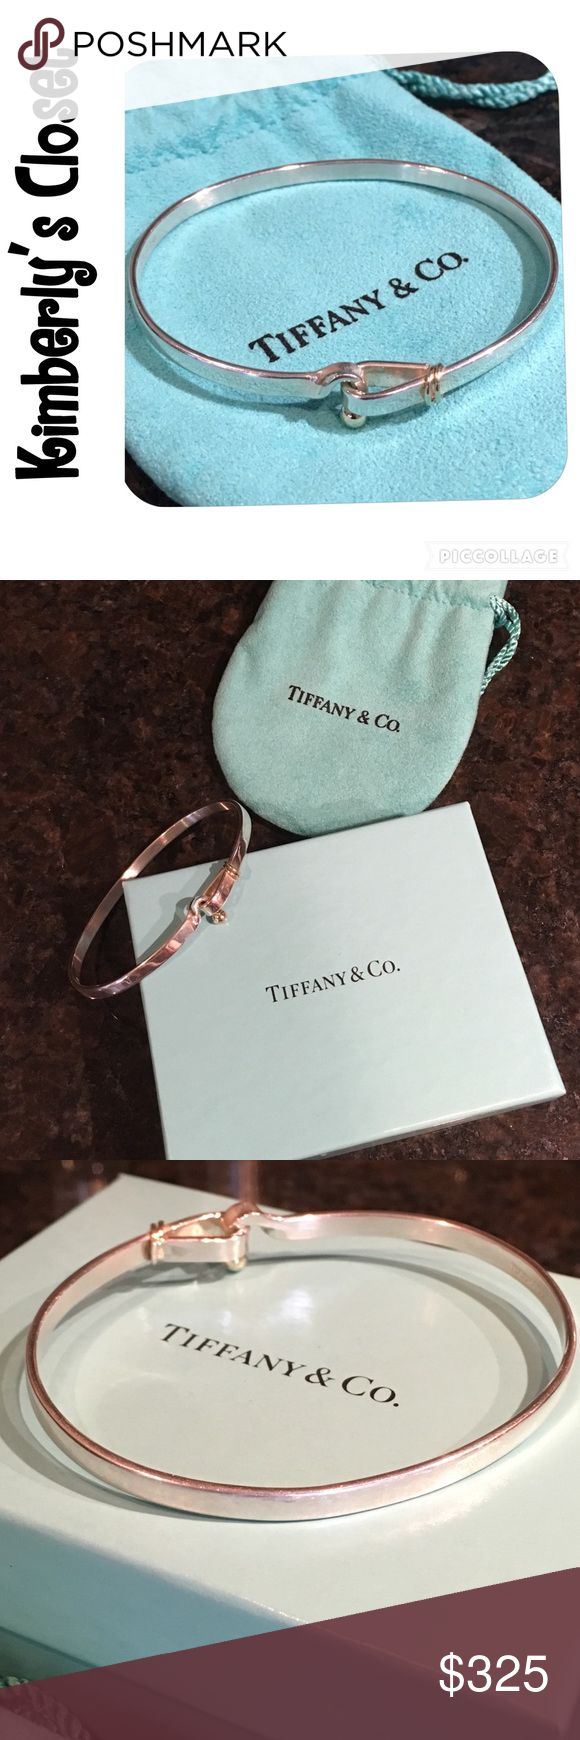 "✨TIFFANY & Co Hook & Eye Bangle Bracelet % AUTHENTIC TIFFANY & Co Hook and Eye bangle bracelet.  Sterling silver with 18k gold accent.  Comes with original box with item ID label and jewelry pouch (see photo).  Measures 2.5"" across from side to side.  Opens for easy on off (see photo).  Bracelet was not worn often.  Small scratch marks in silver (mostly on back side - see photo) just from the general way silver wears.  Matching ring also listed in my closet - bundle and save! Tiffany & Co…"